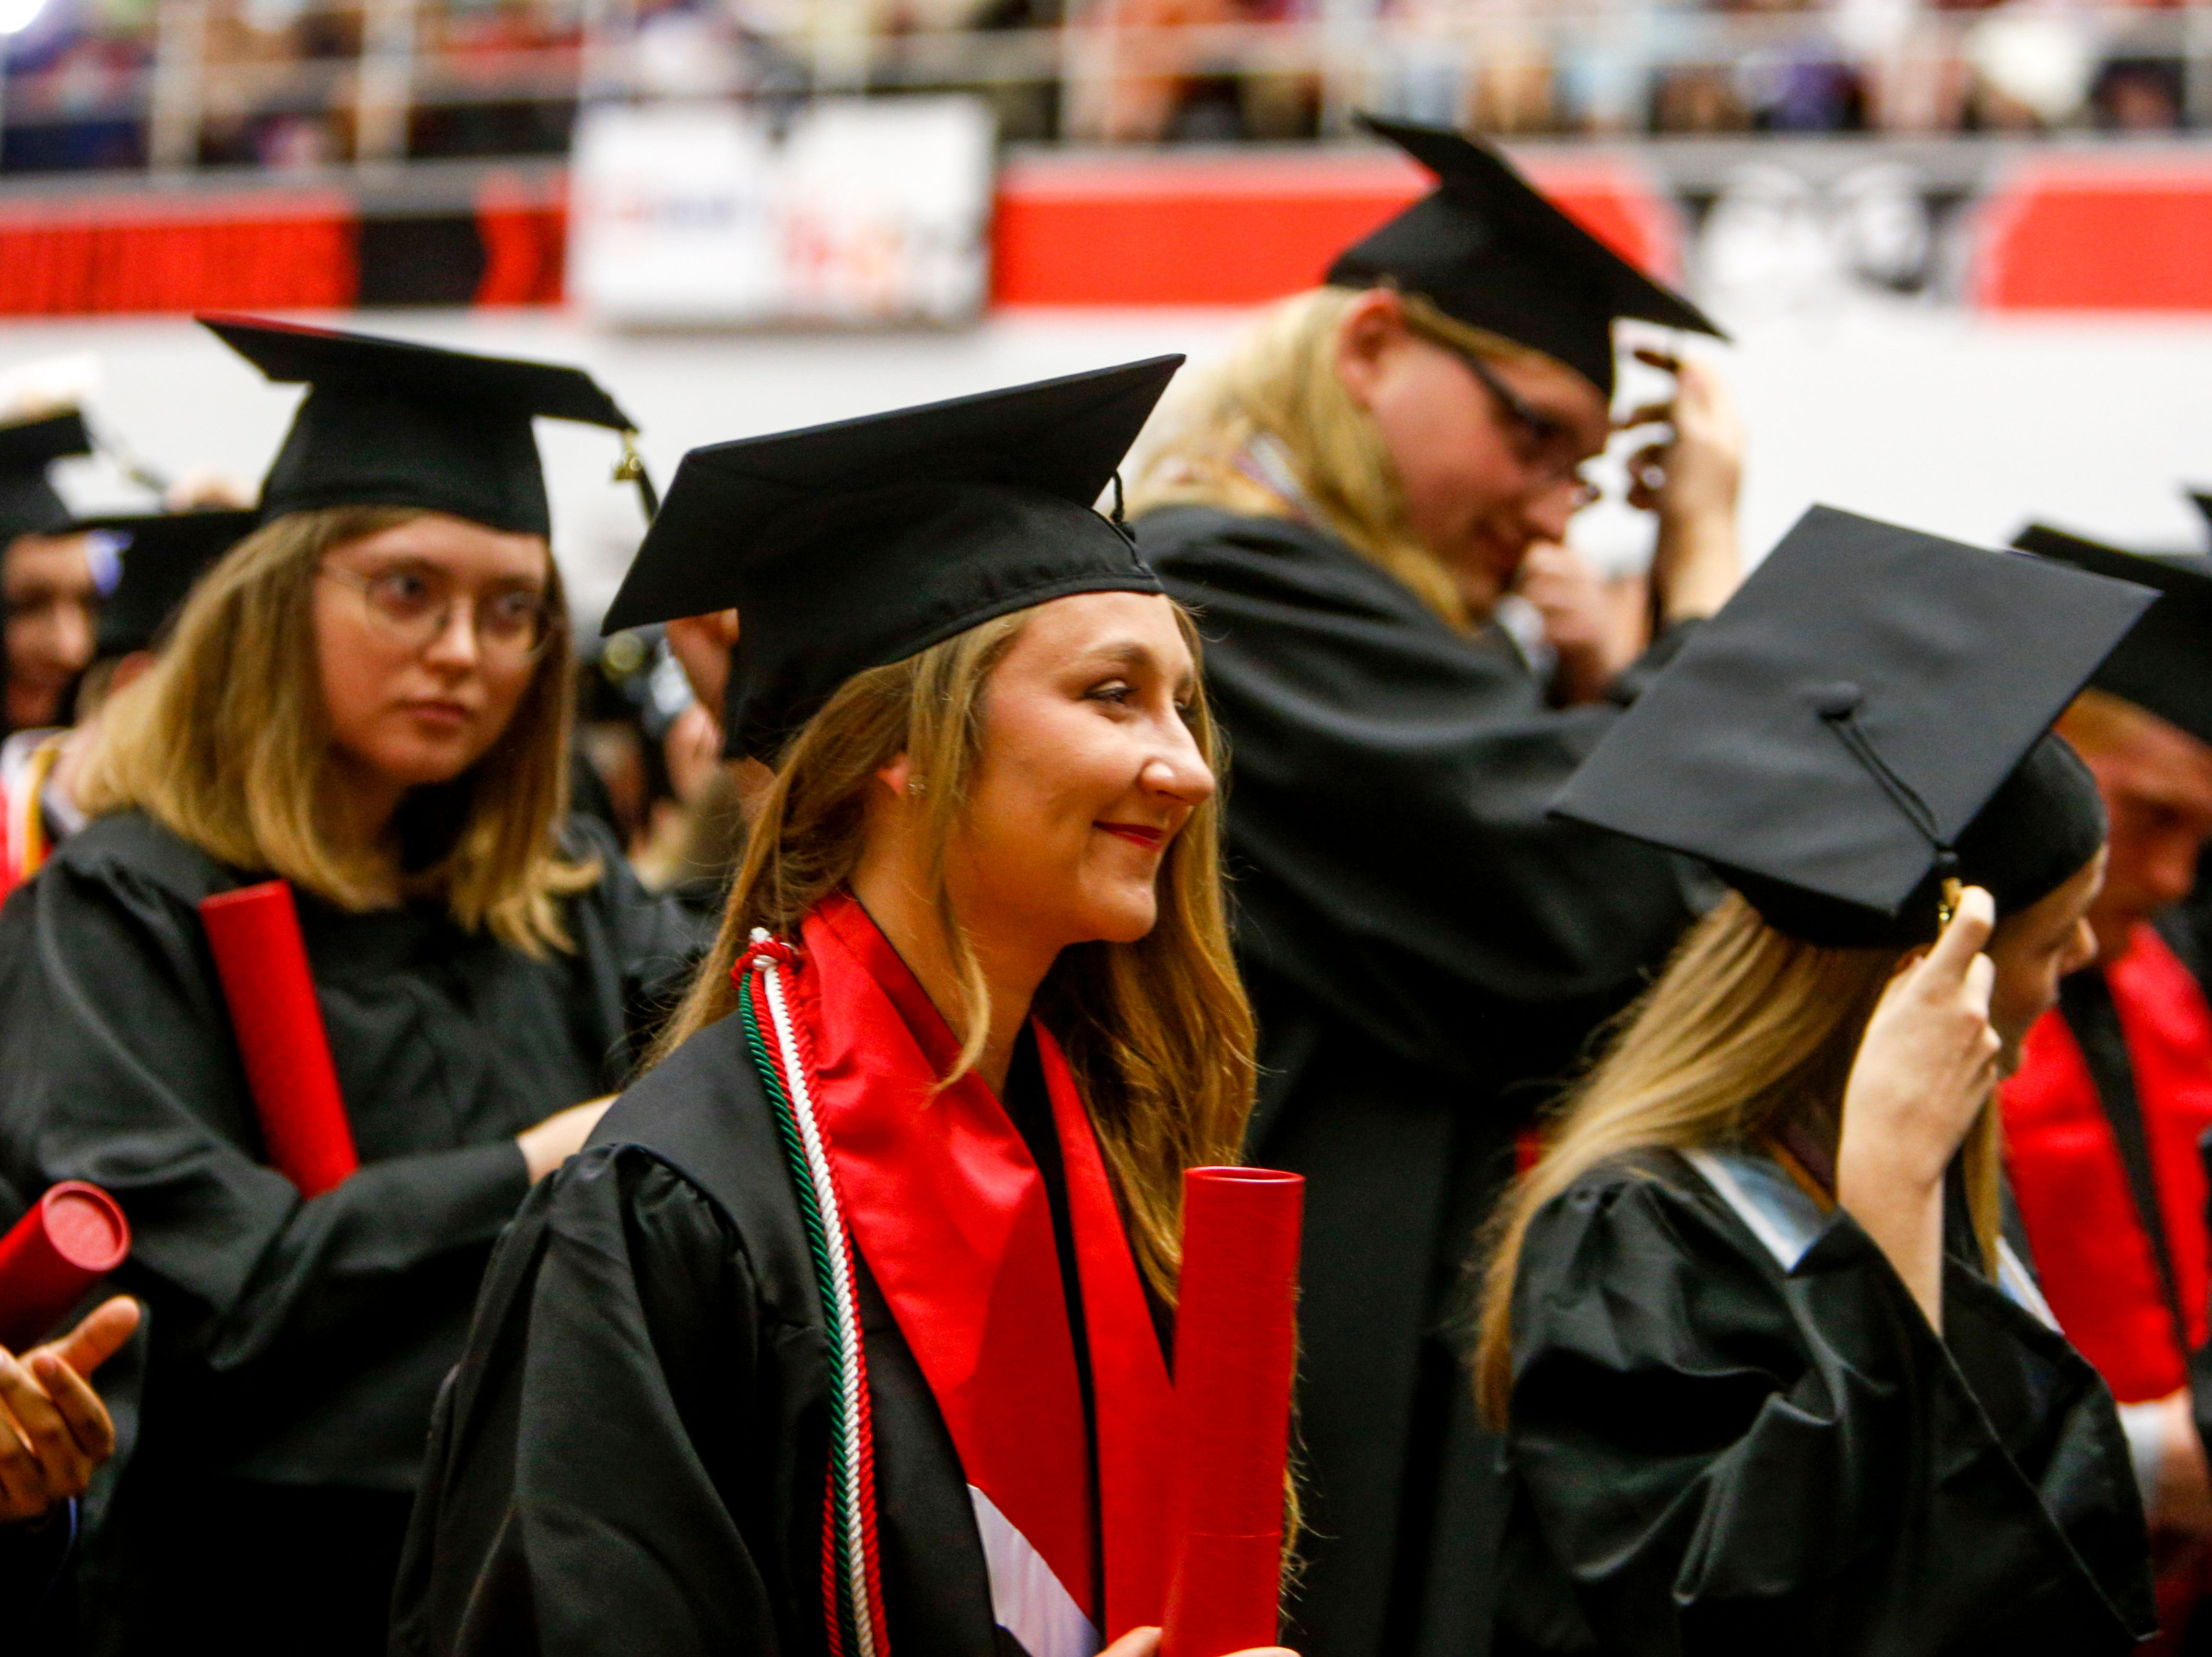 Students smile after turning over their tassel following receiving their diplomas at the Austin Peay spring commencement ceremony 2019 for College of Business and College of STEM at Winfield Dunn Center in Clarksville, Tenn., on Friday, May 3, 2019.